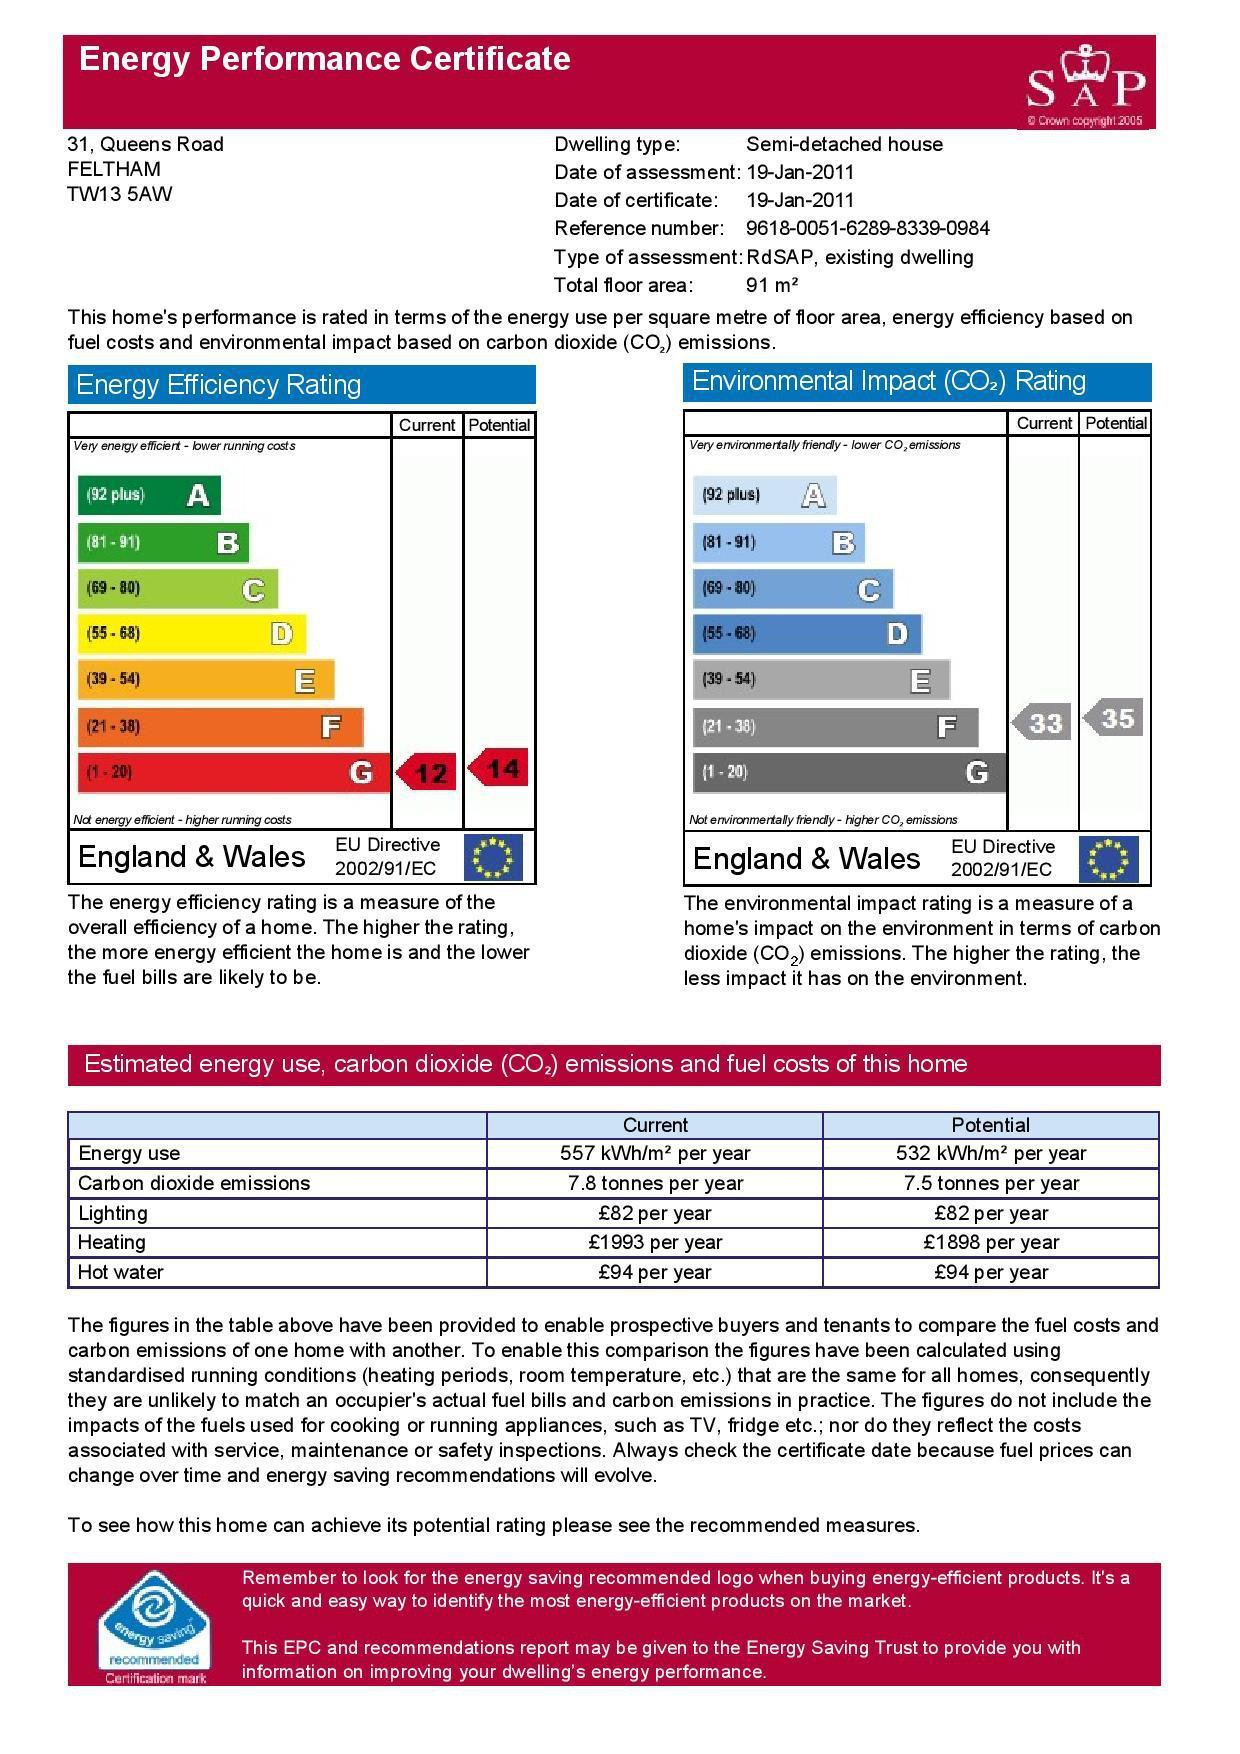 EPC Graph for 31 Queens Road, Feltham, Middlesex TW13 5AW